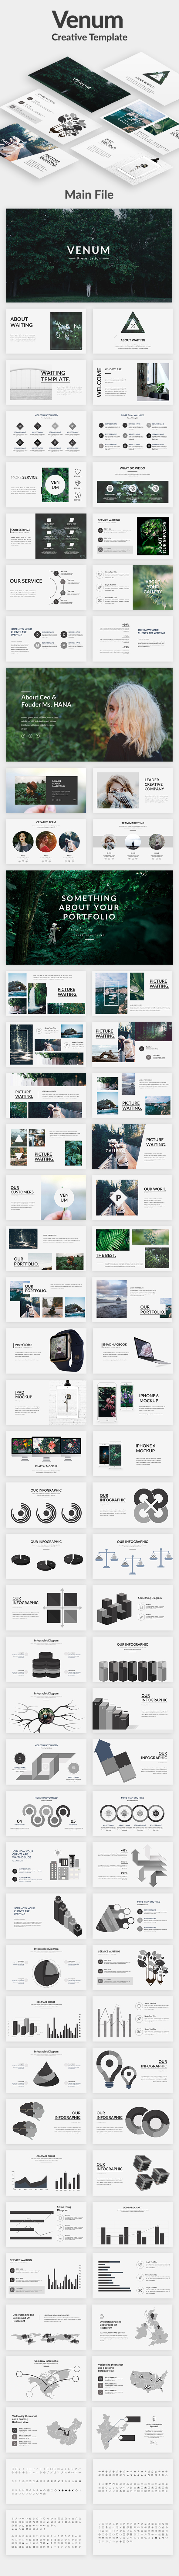 Venum Creative Keynote Template - Creative Keynote Templates